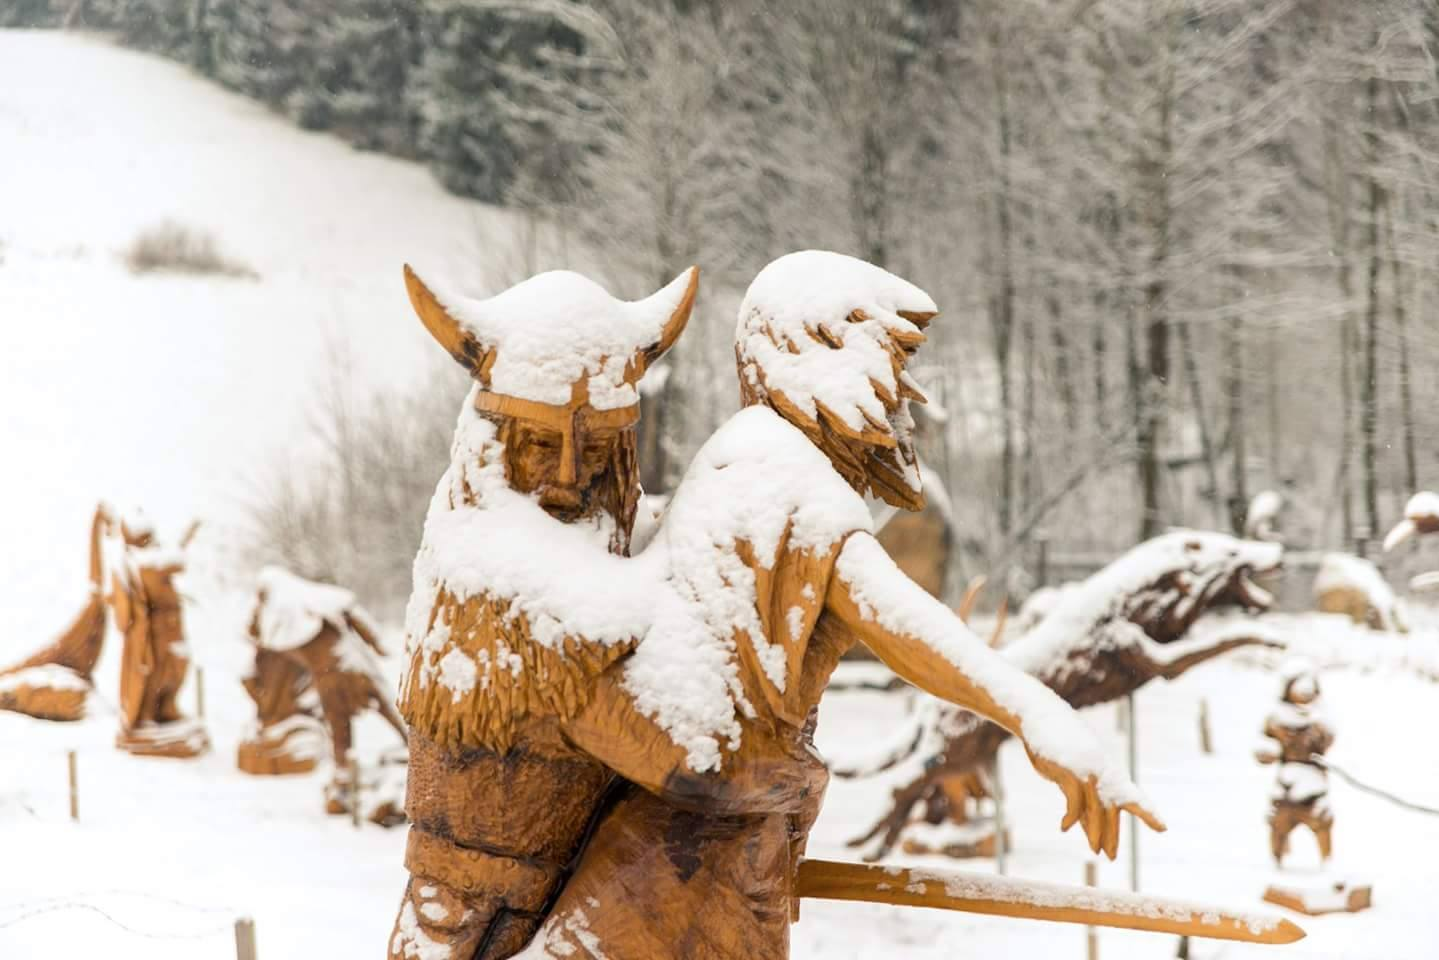 sculptures in the snow: Viking raid by Simon O'Rourke. A viking kidnaps a young woman. Her father kneels in anguish.